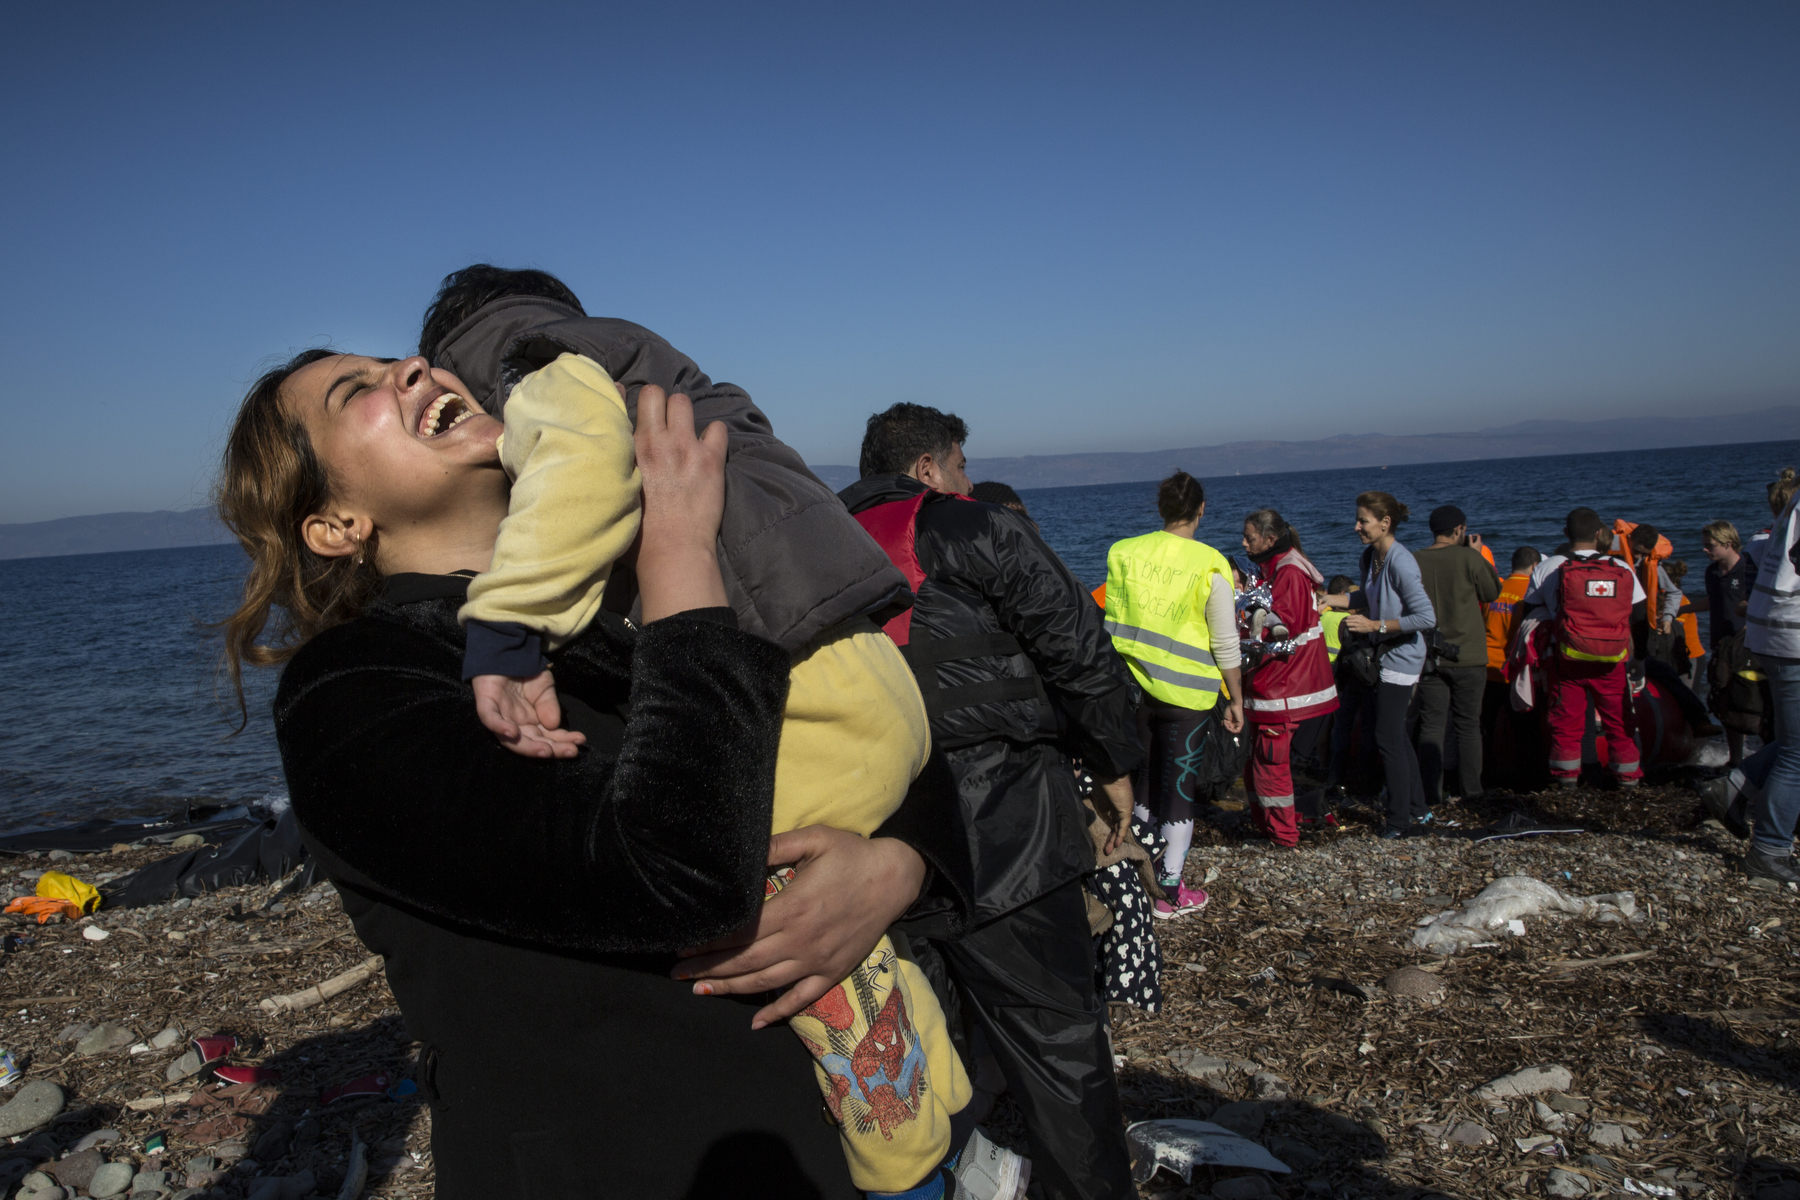 LESBOS, GREECE - NOVEMBER 12: A Syrian refugee rejoices after arriving on an overcrowded raft to the island of Lesbos, Greece on November 12, 2015. Dozens of rafts and boats are still making the journey daily via the Aegean Sea, over 590,000 people have crossed into the gateway of Europe. Nearly all of those are from the war zones of Syria, Iraq and Afghanistan. (Photo by Paula Bronstein)